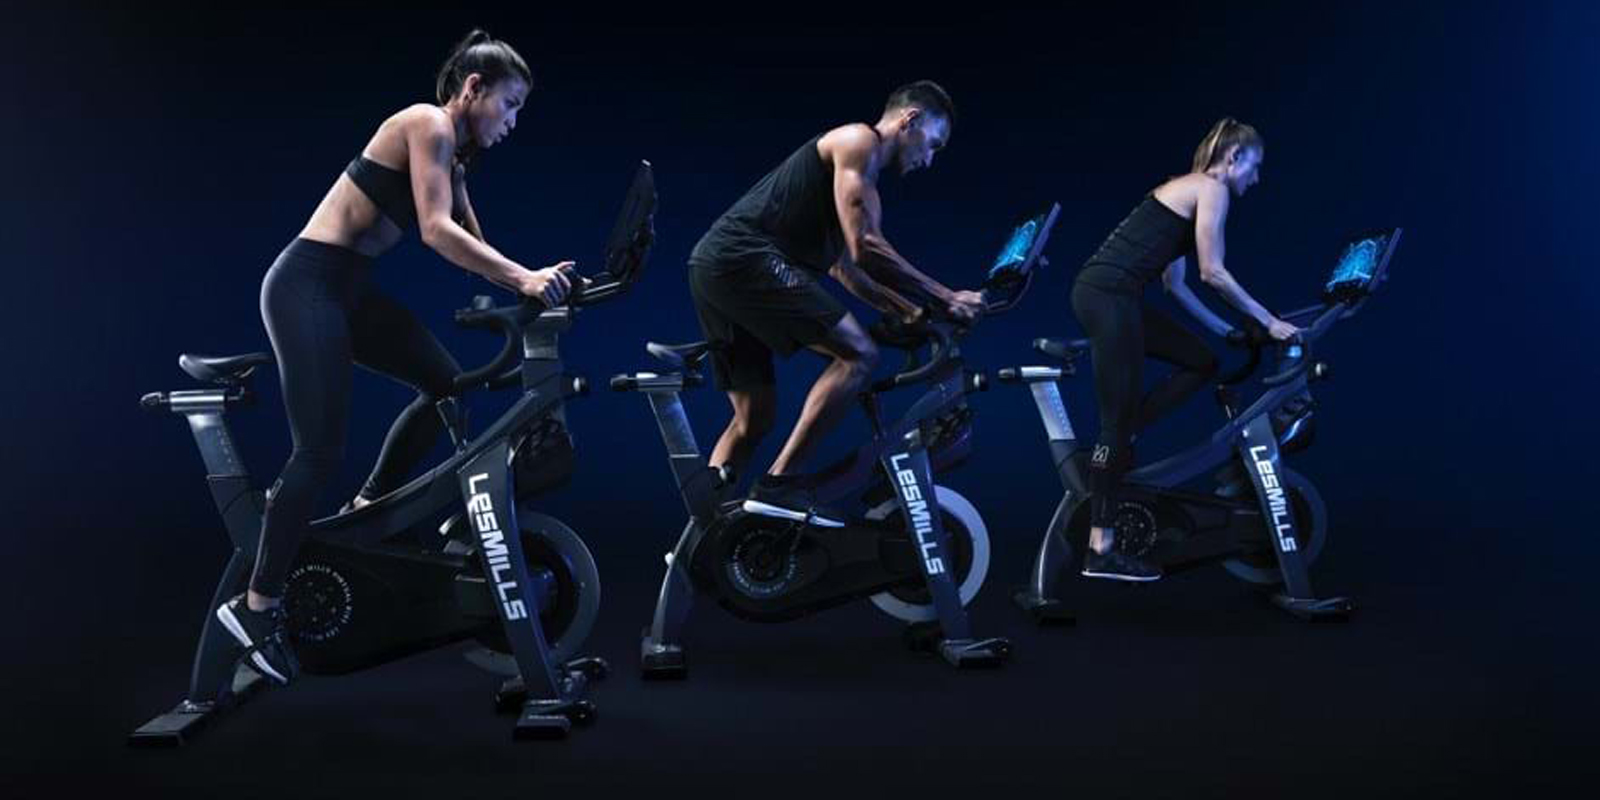 Thrive-Gym-has-a-dedicated-Les-Mills-spin-cycling-studio